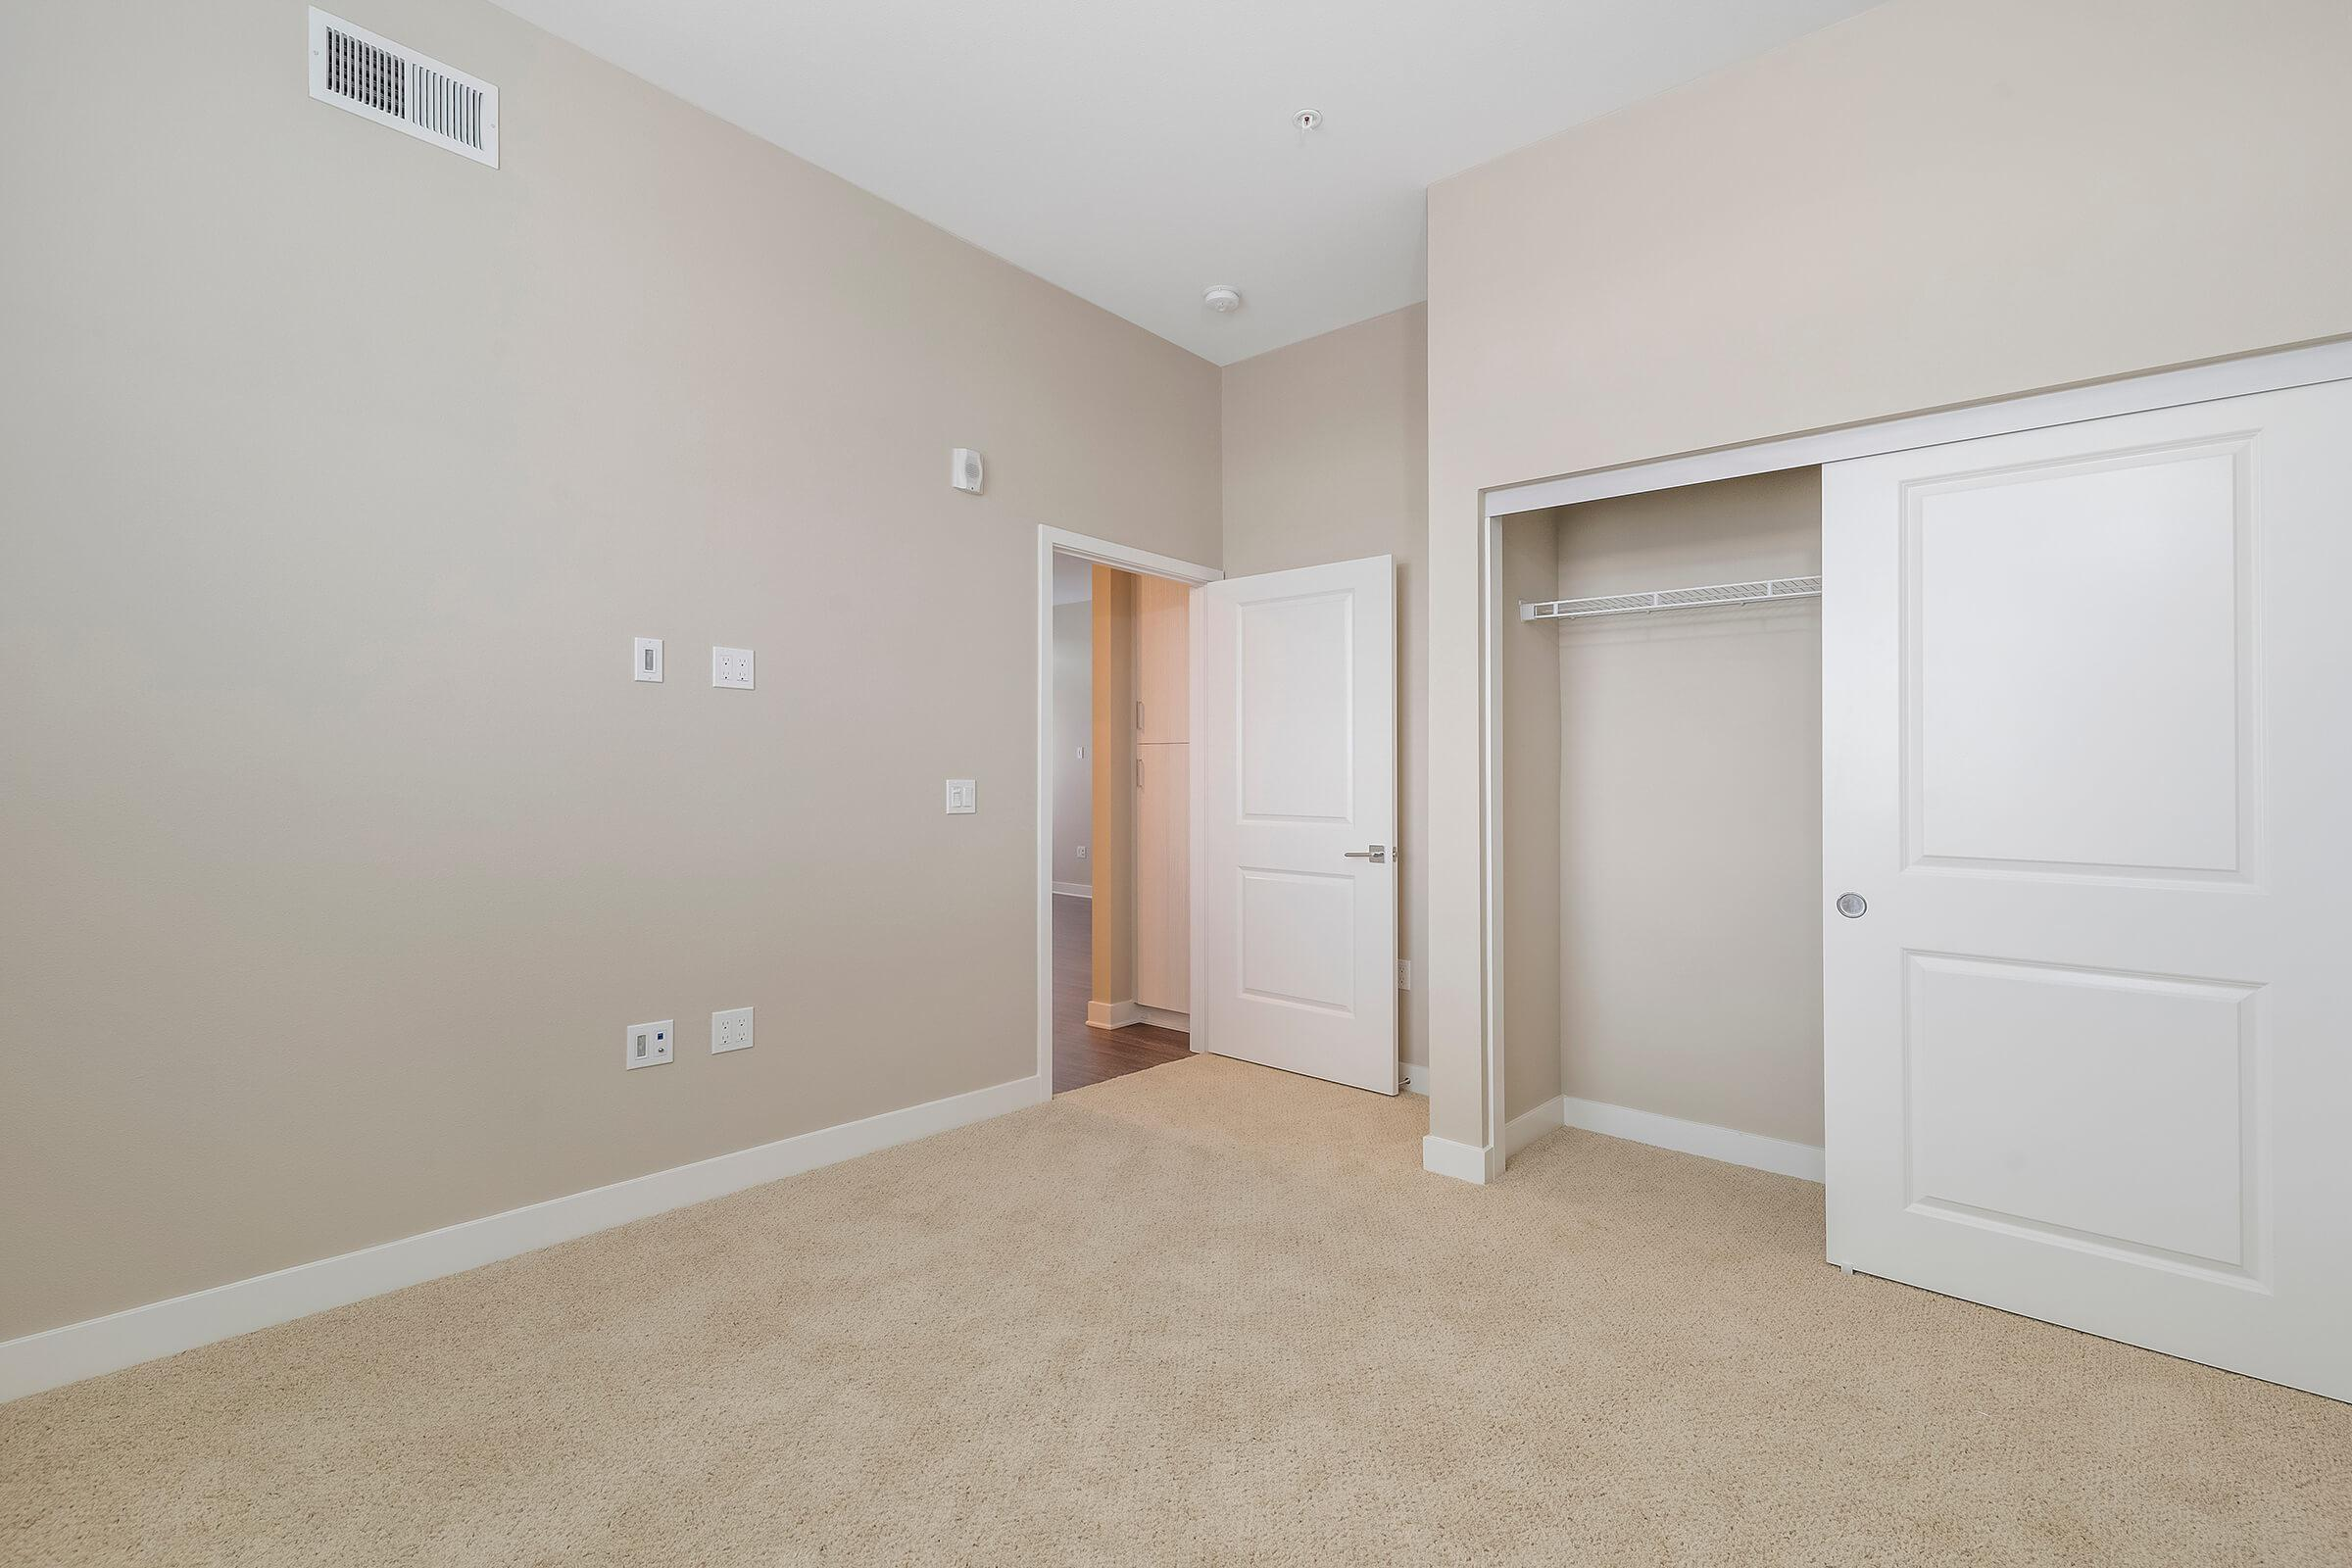 Carpeted bedroom with open sliding closet doors